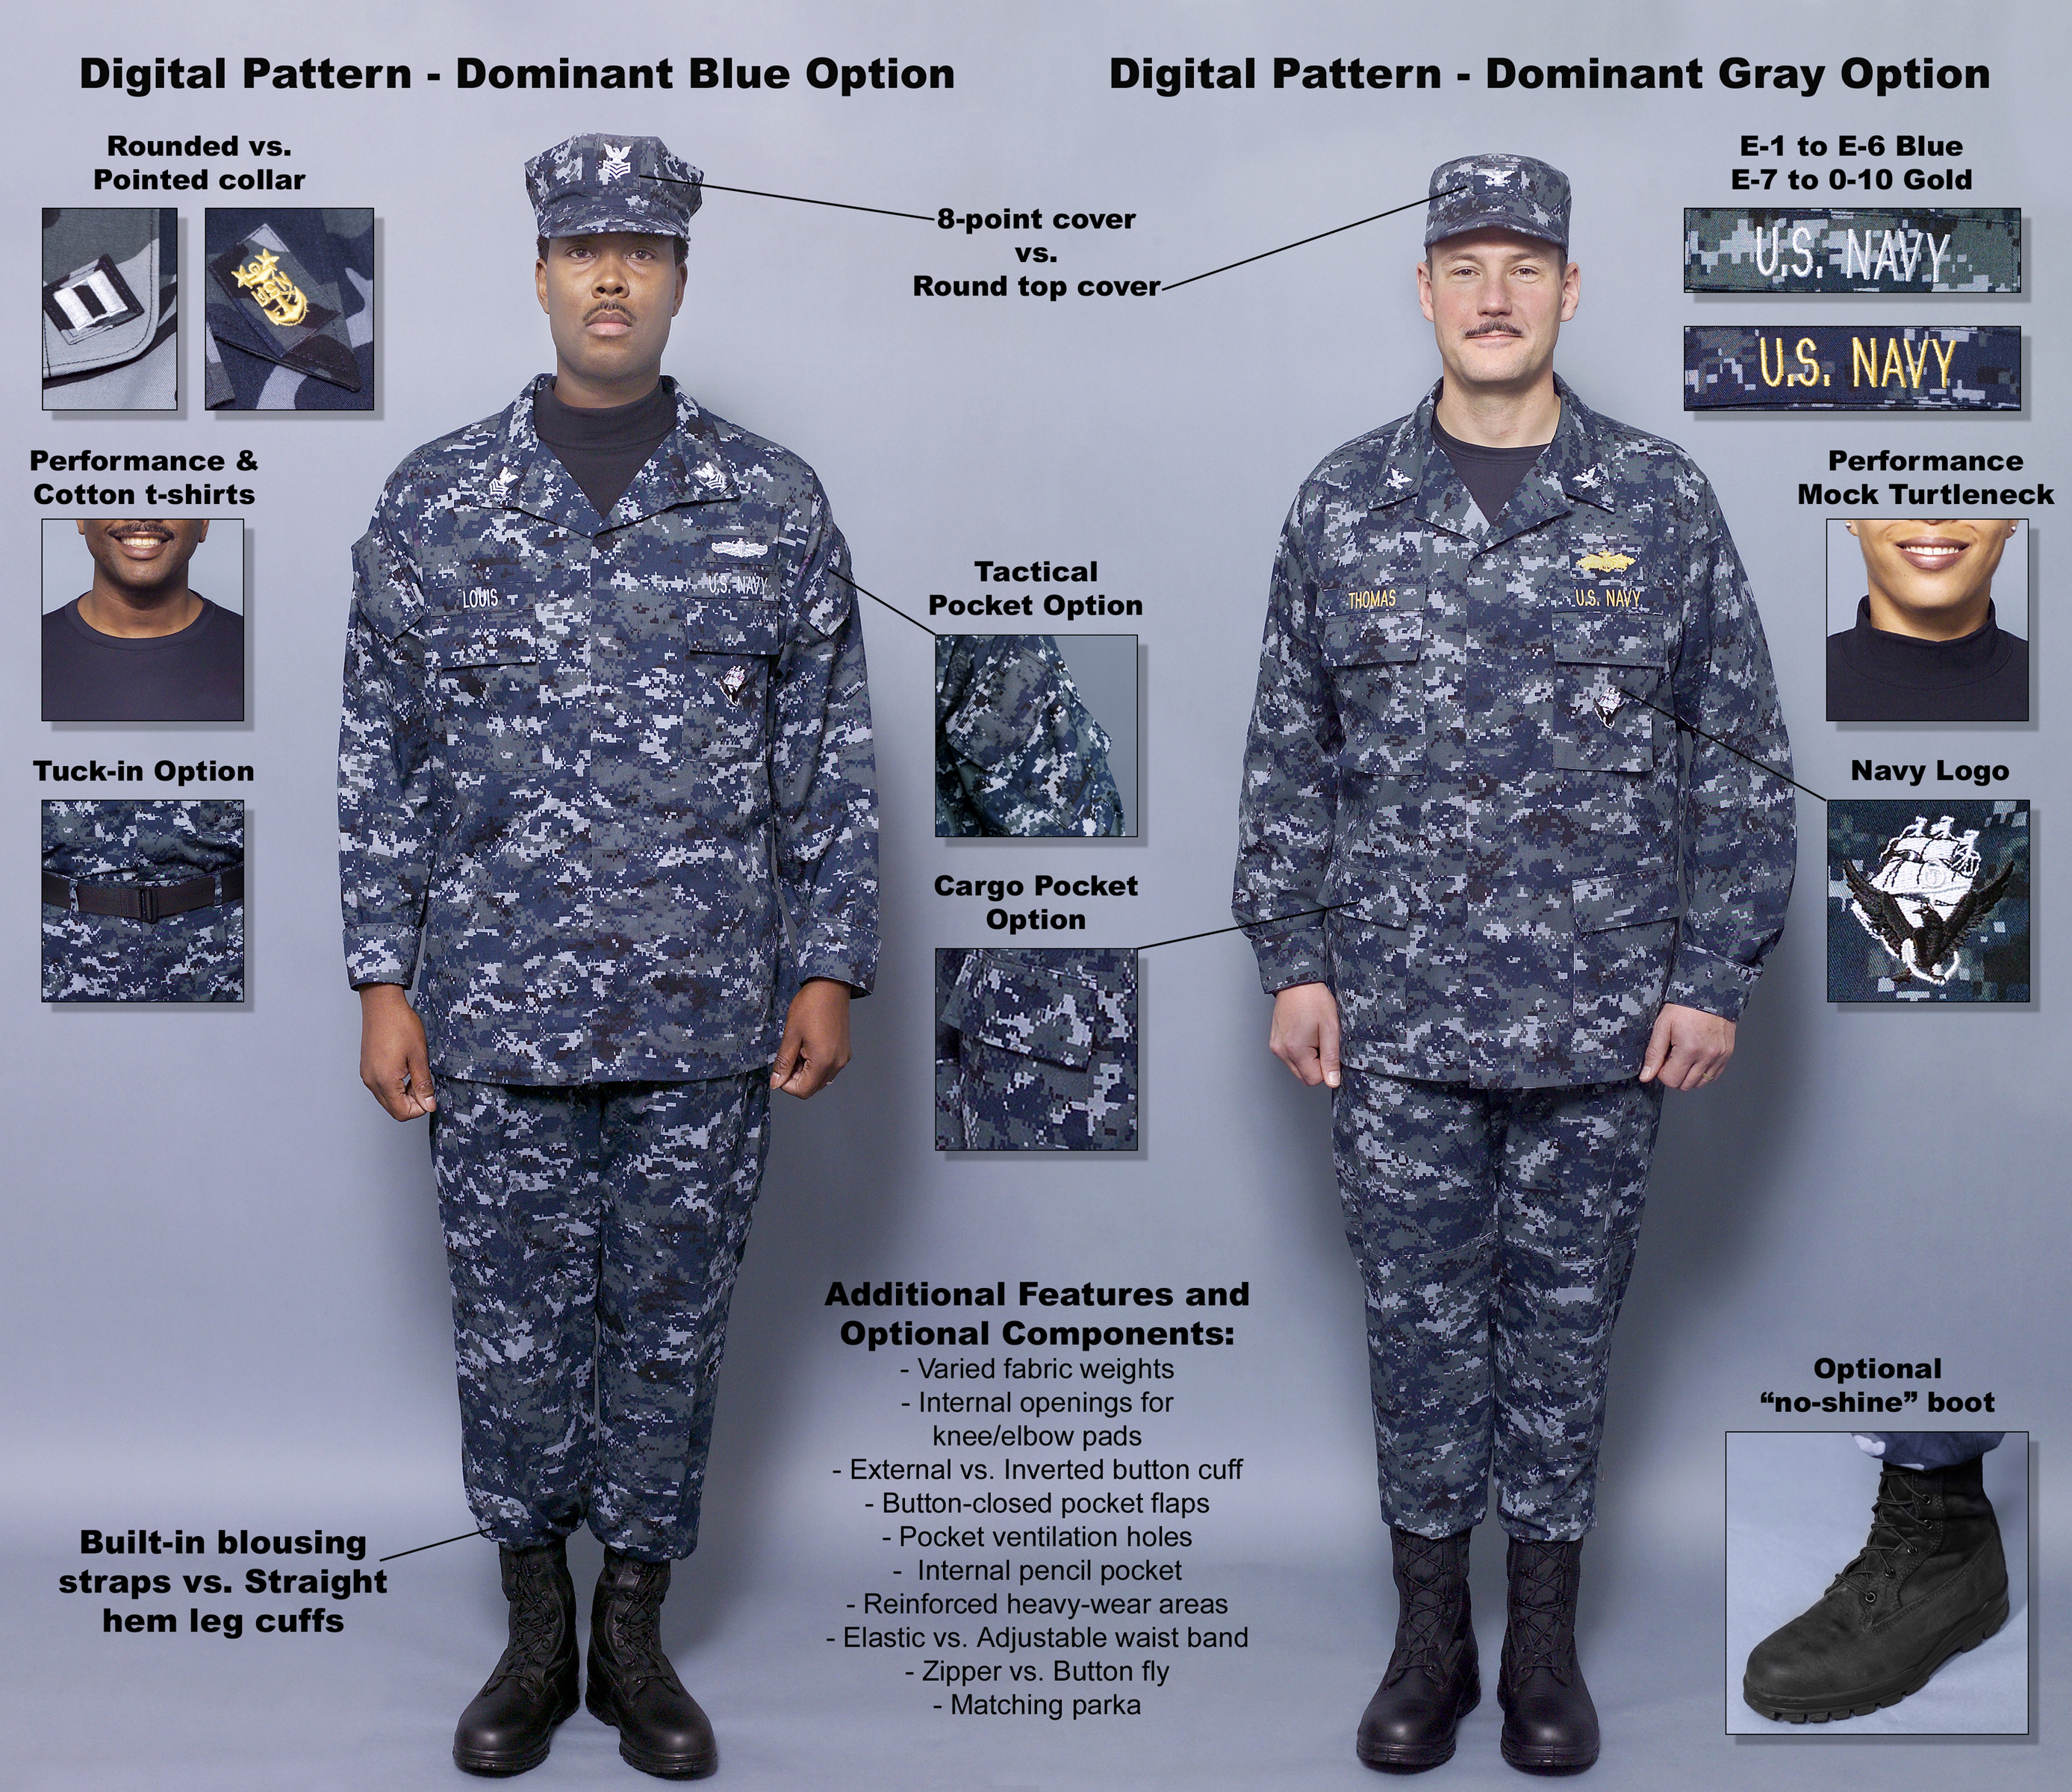 navy uniform regulations Start studying navpers 15665, usnavy uniform regulations learn vocabulary, terms, and more with flashcards, games, and other study tools.